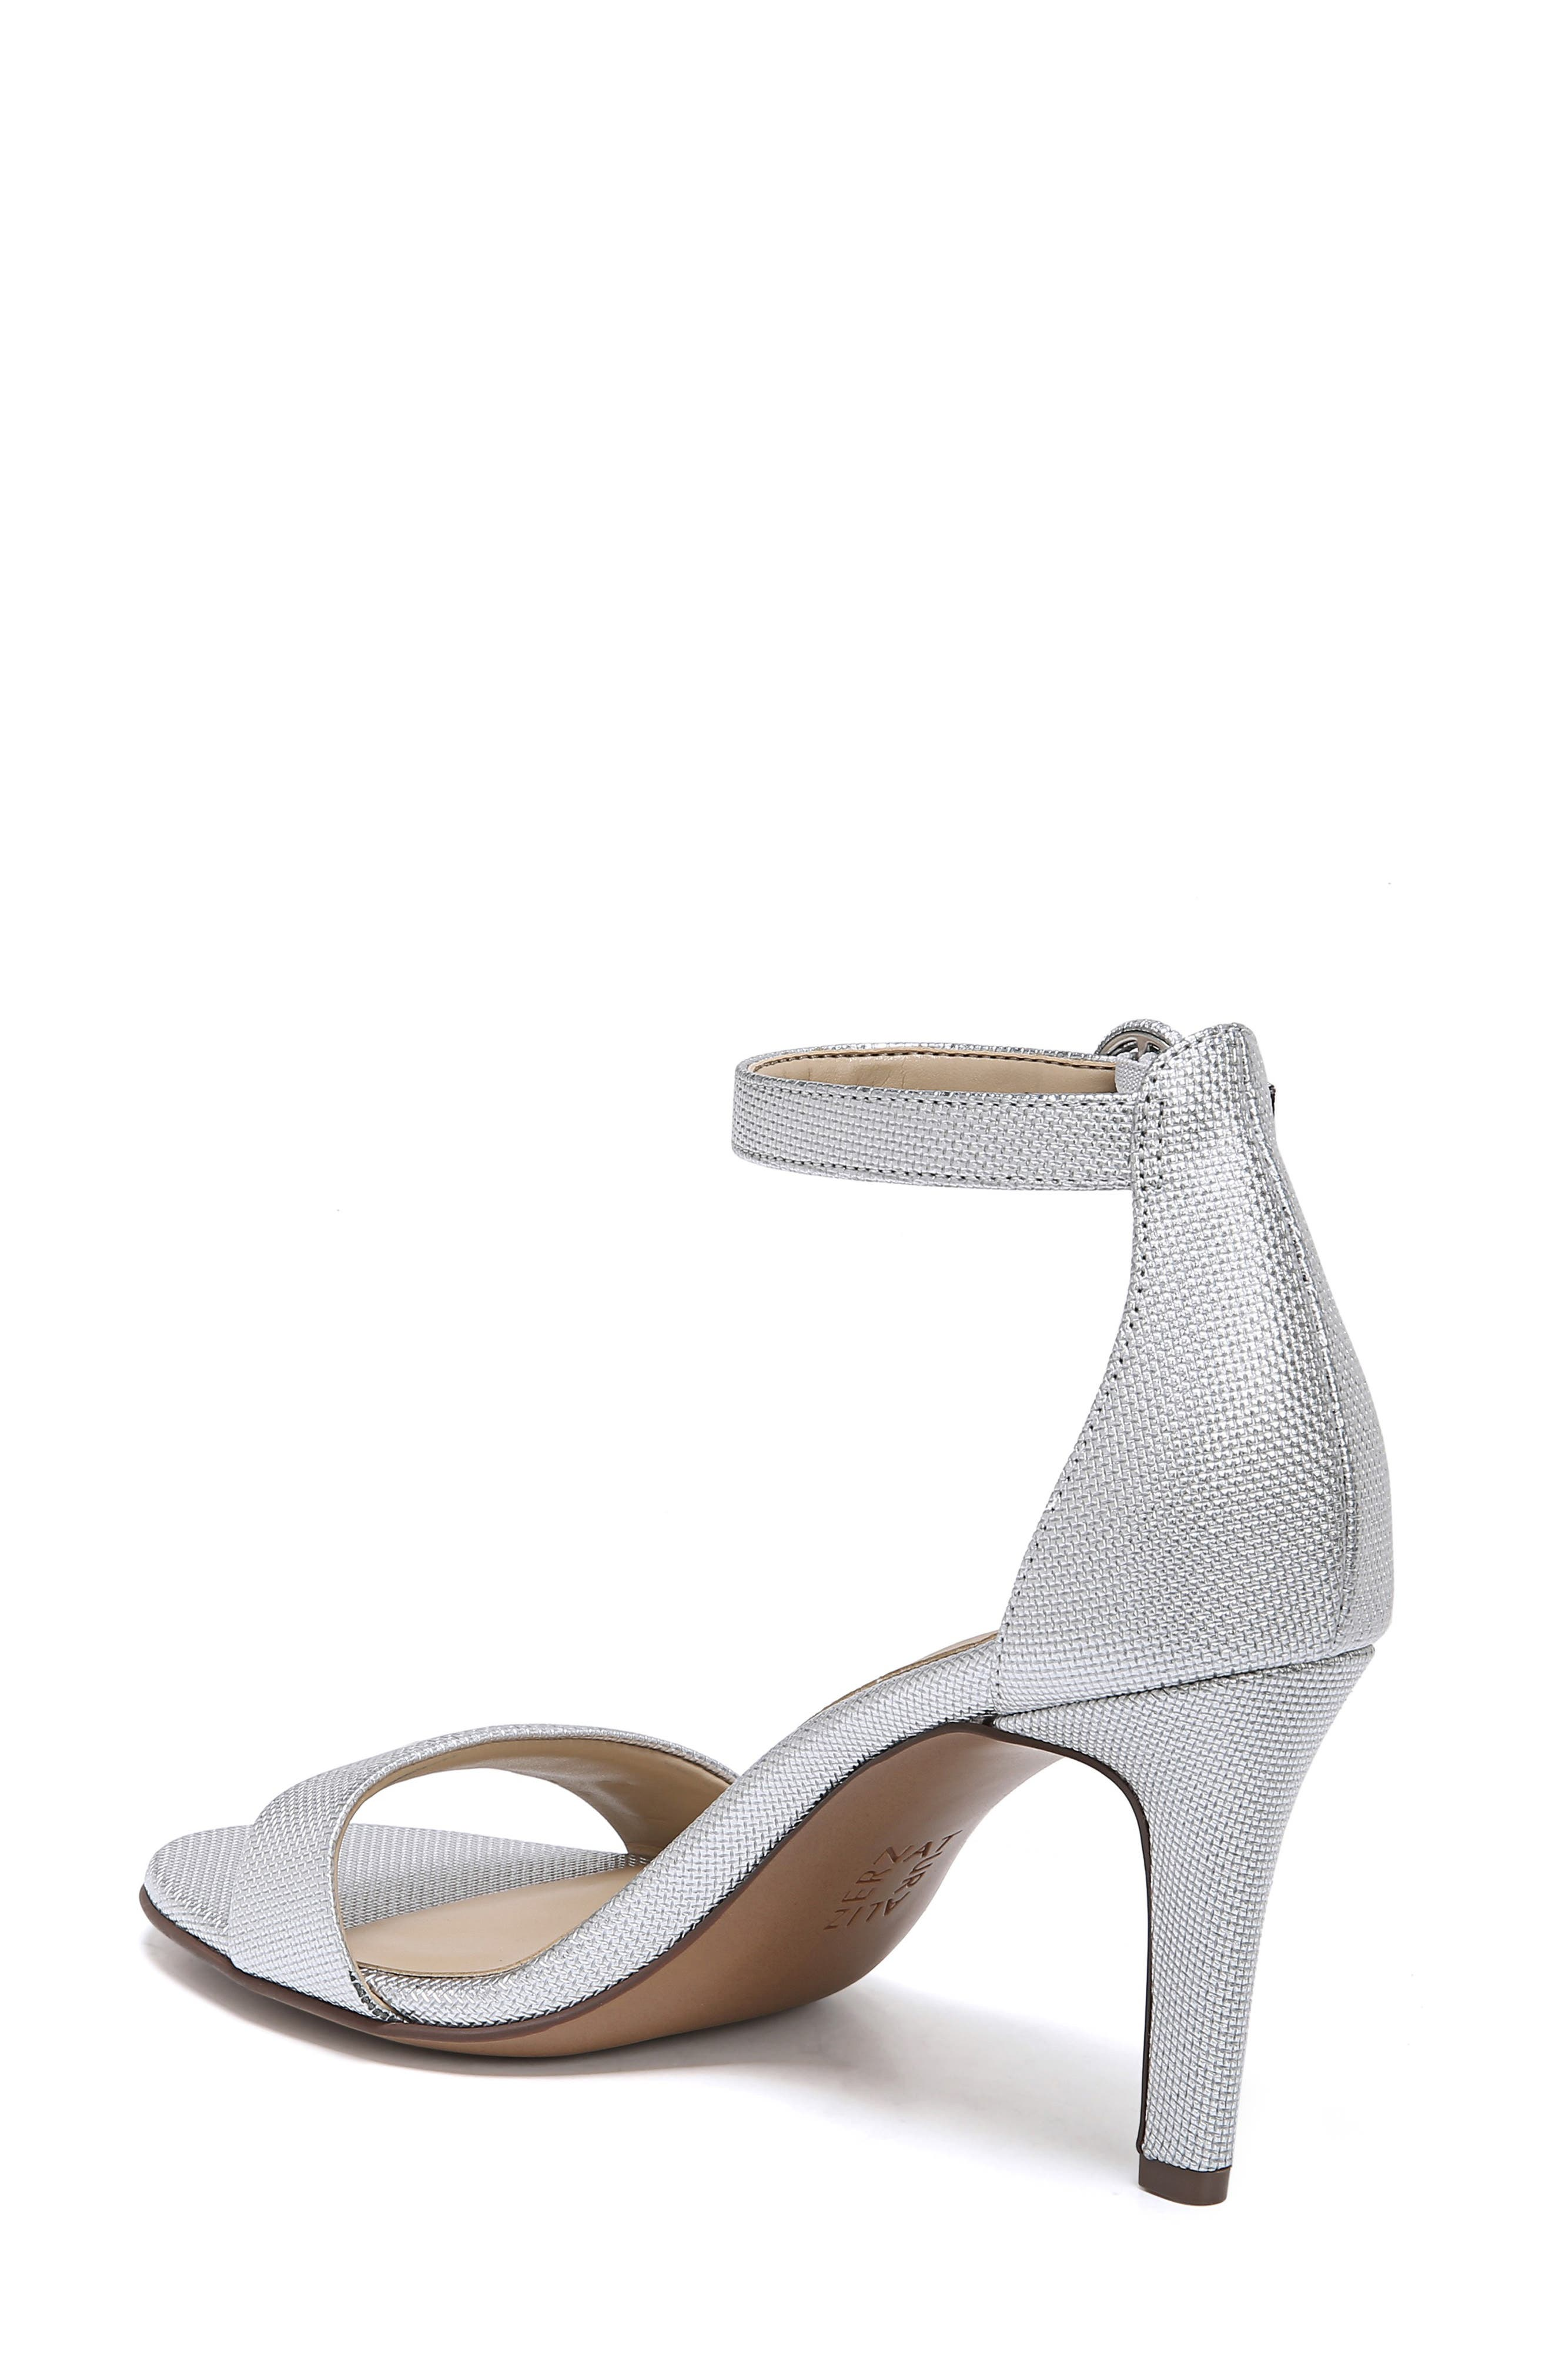 Kinsley Sandal,                             Alternate thumbnail 2, color,                             SILVER